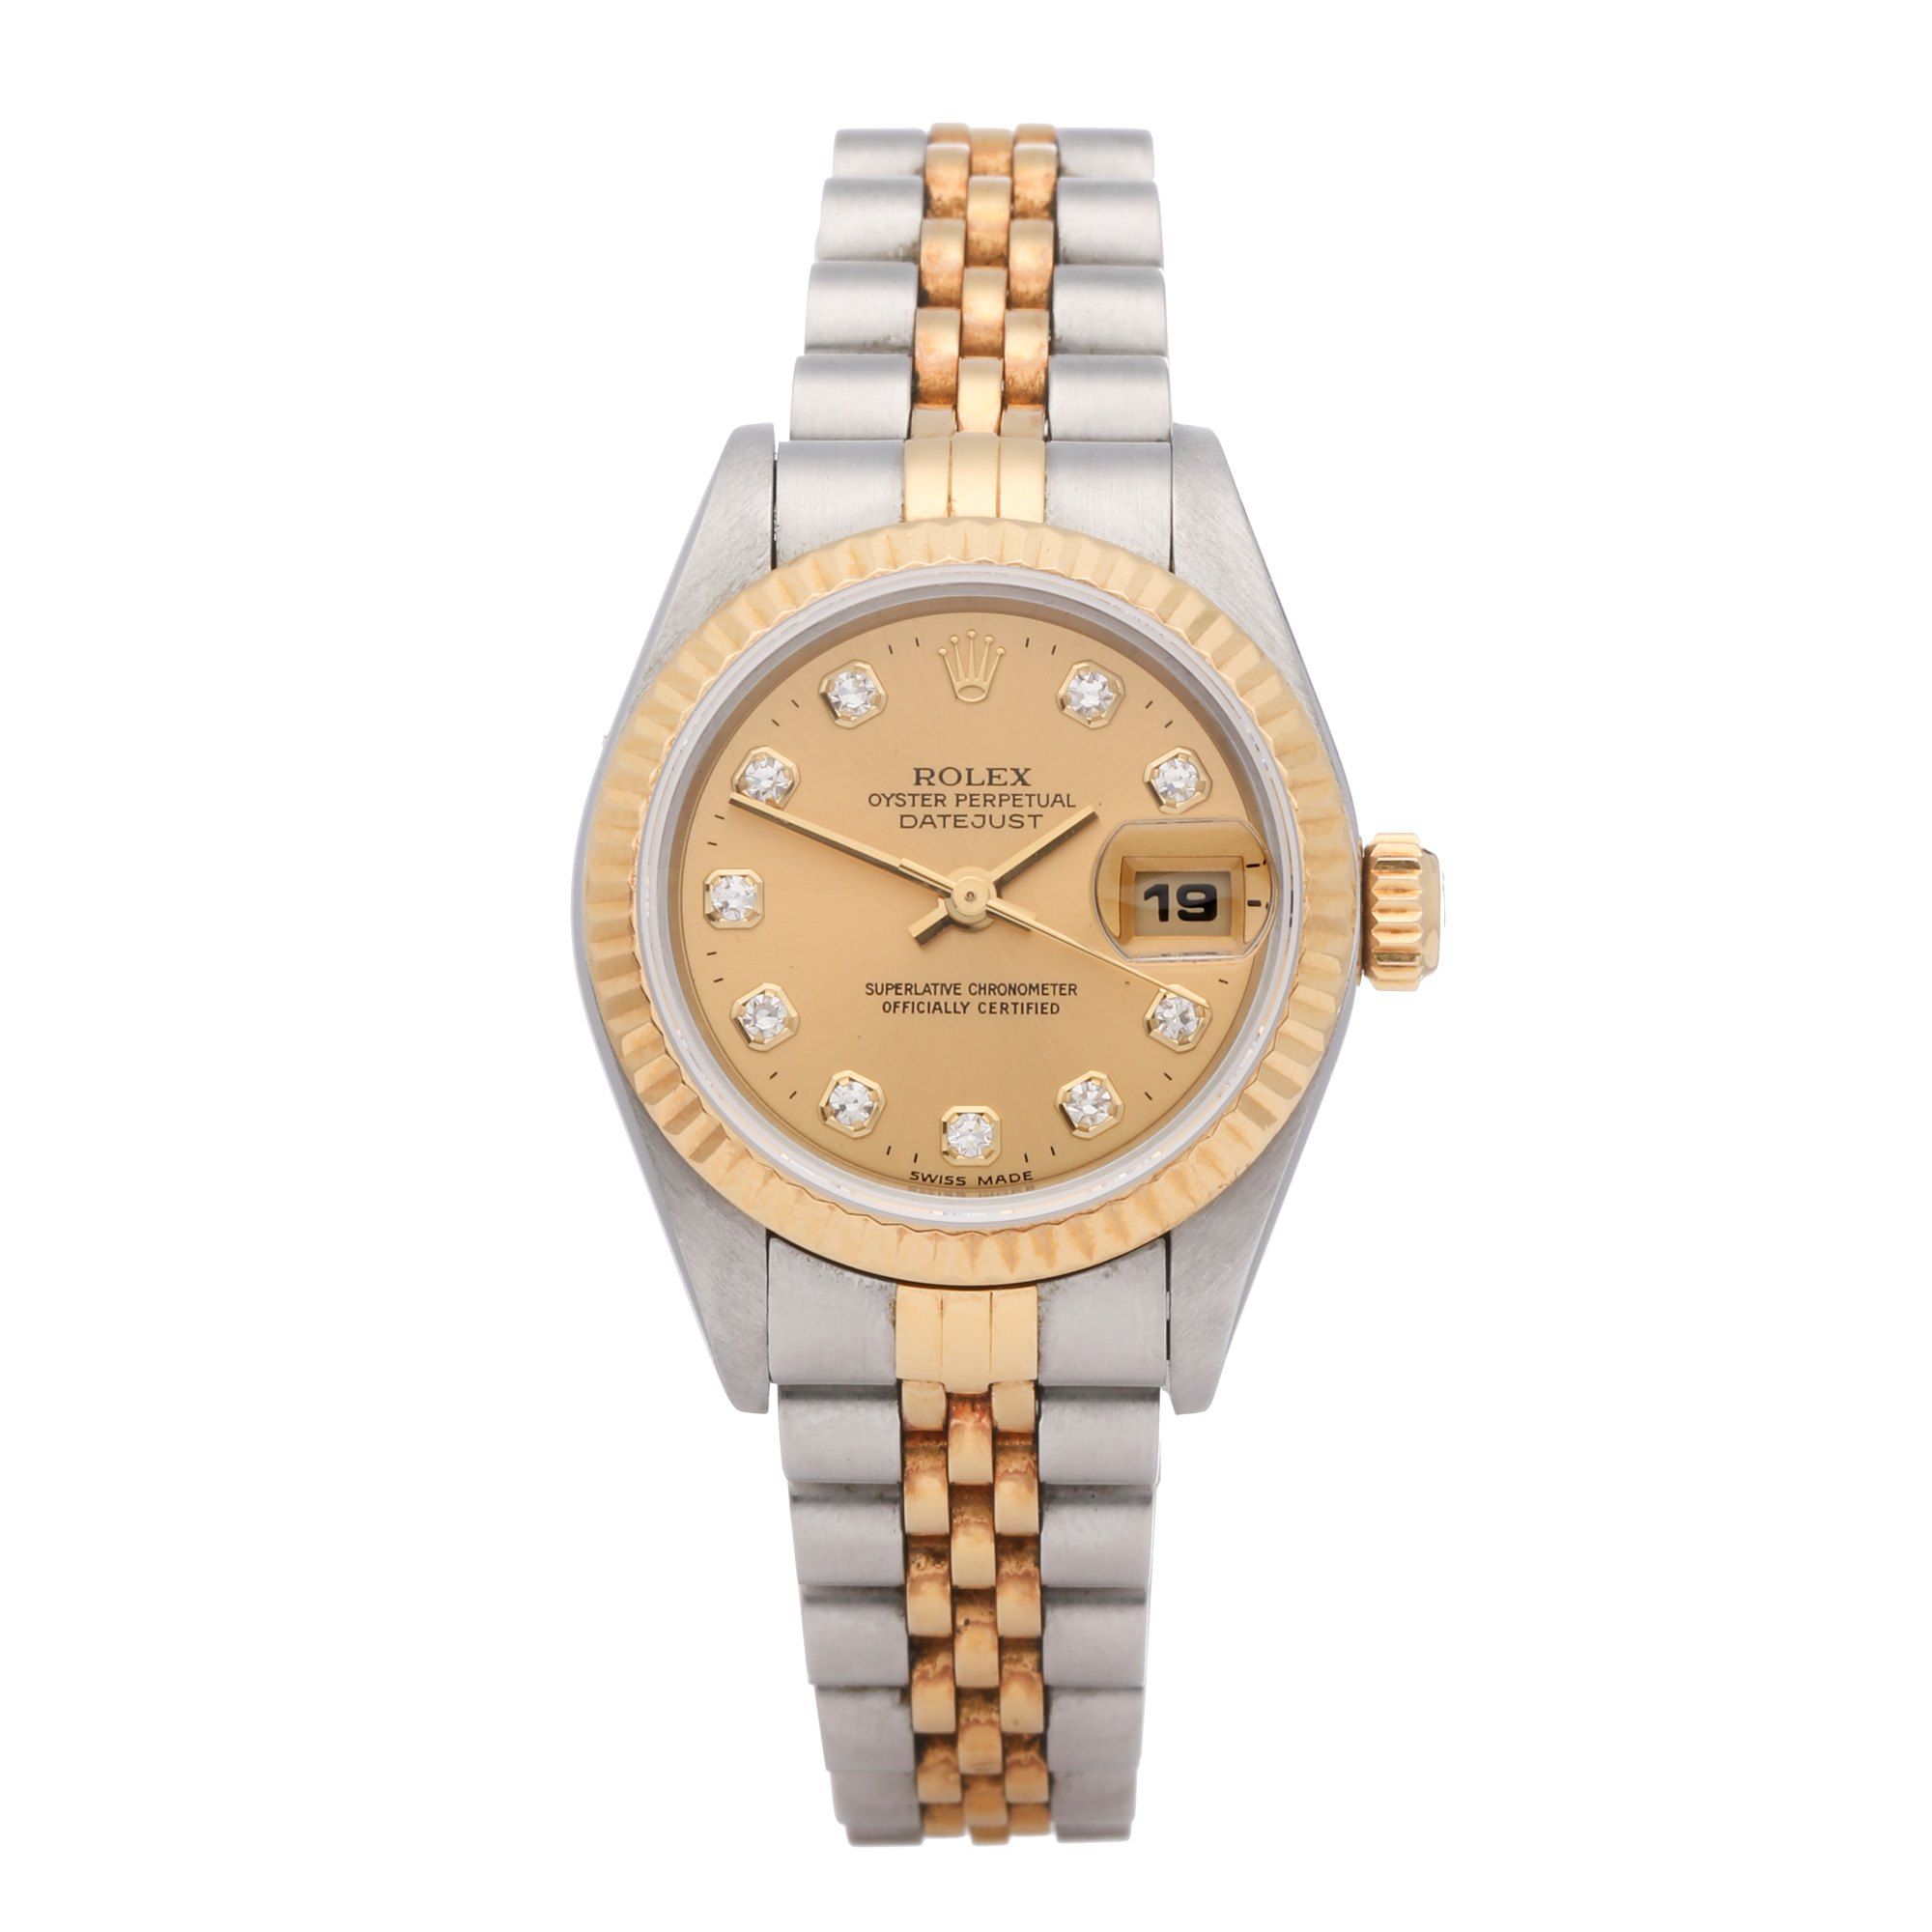 Rolex Datejust 26 18K Yellow Gold & Stainless Steel 69173G